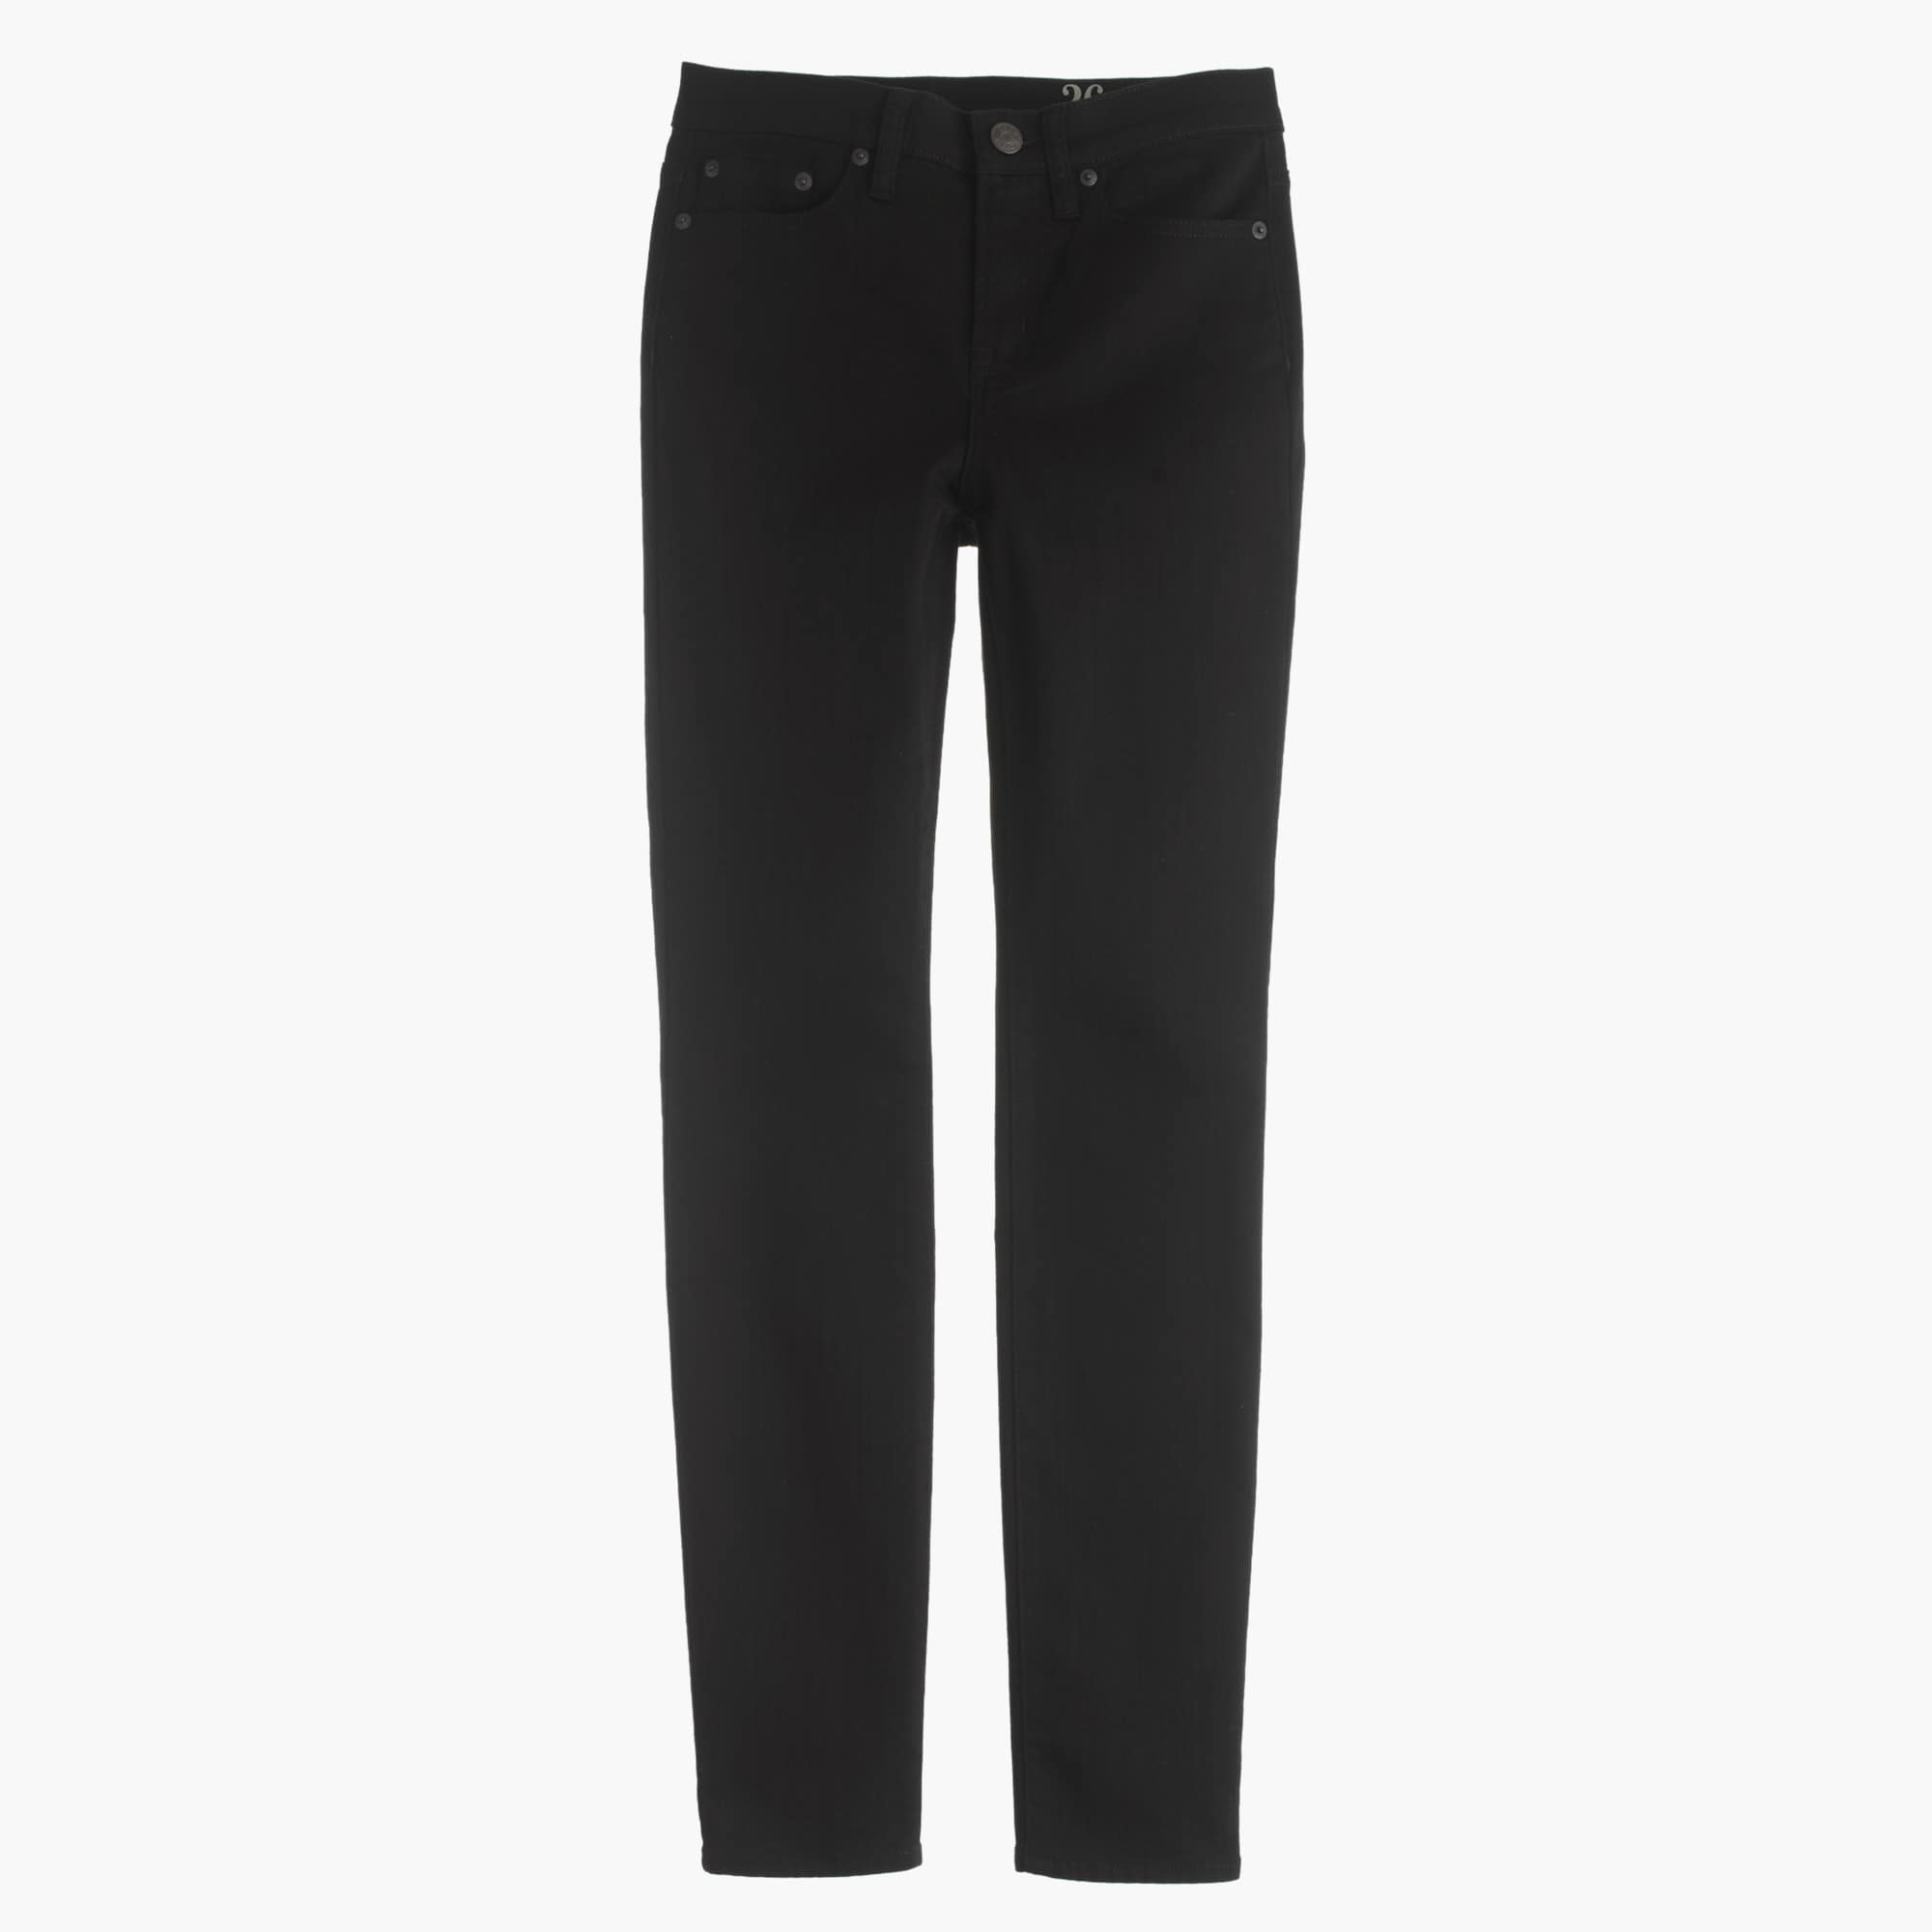 "Petite 9"" high-rise toothpick jean in black"